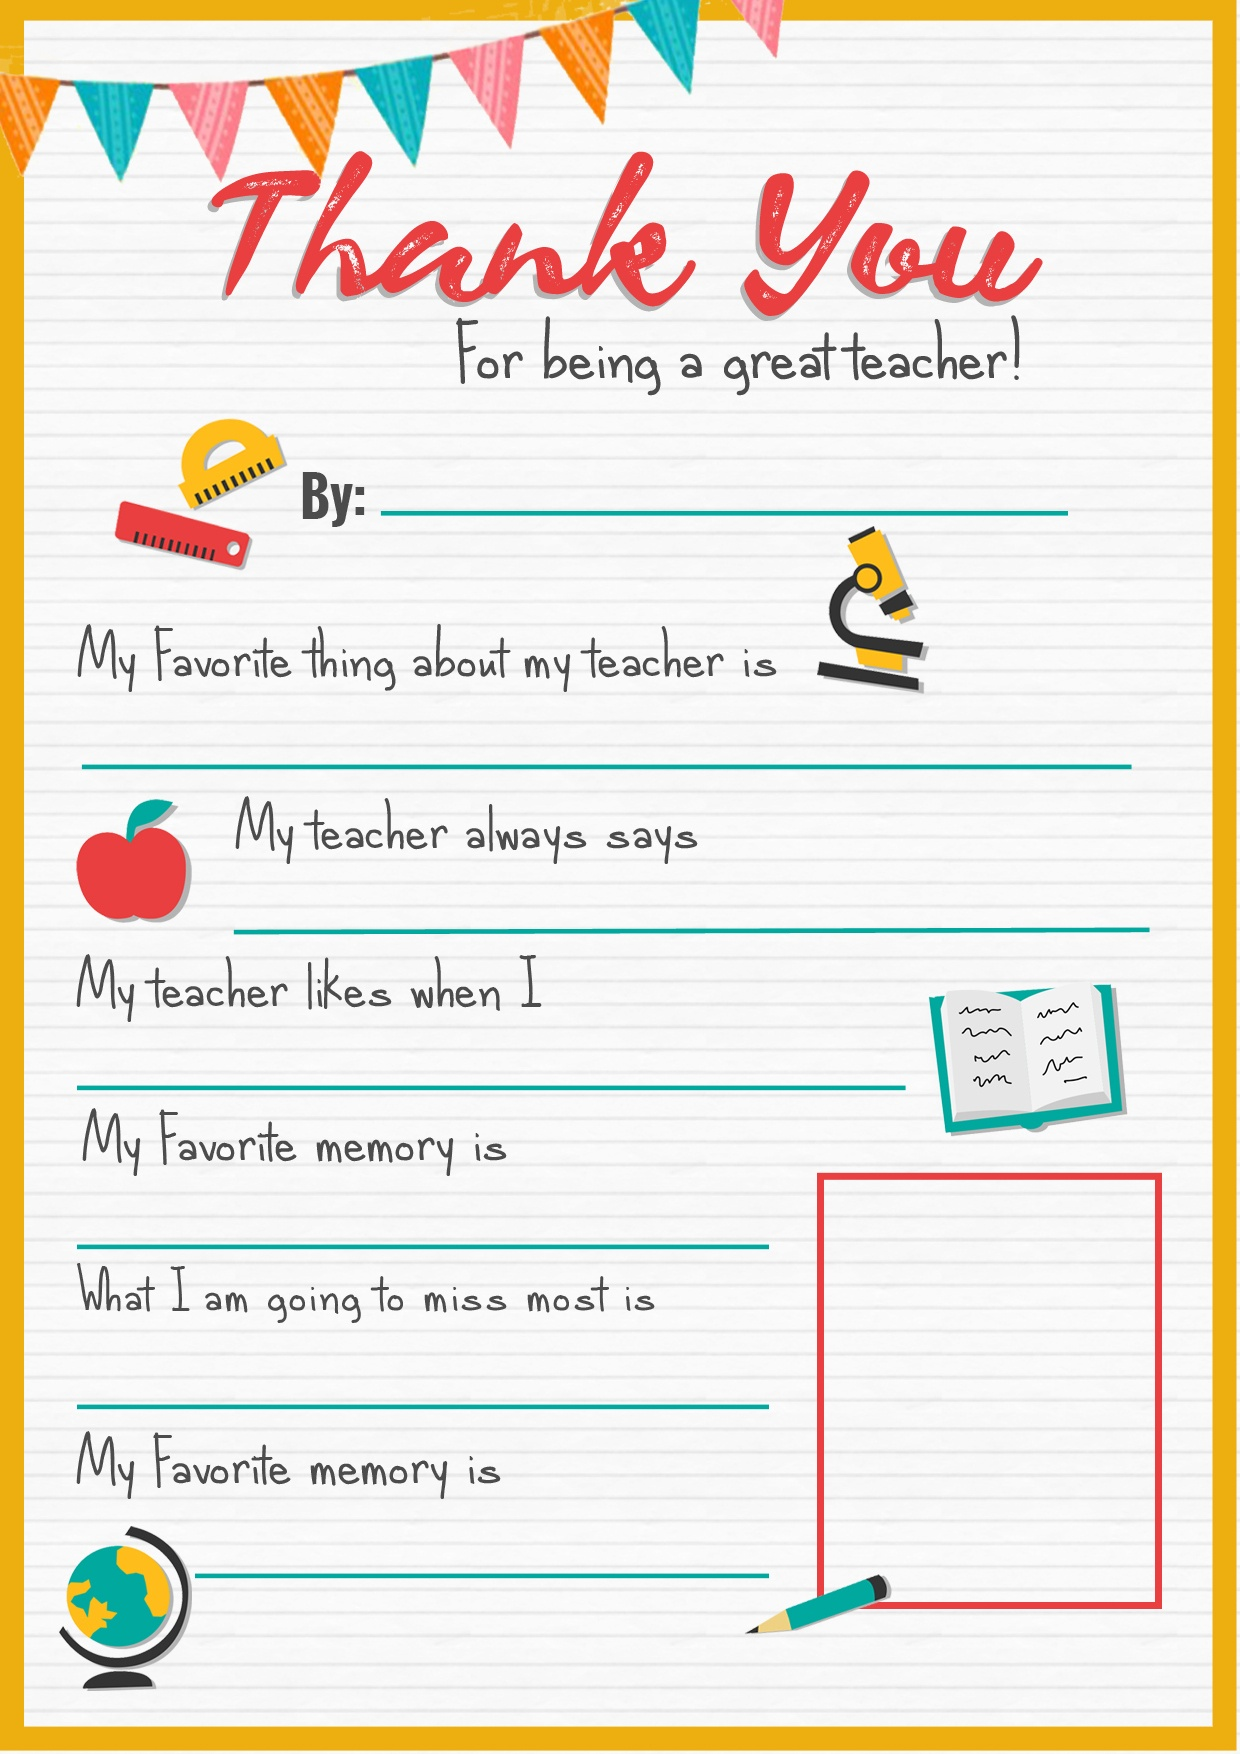 Thank You Teacher - A Free Printable | Stay At Home Mum - All About My Teacher Free Printable